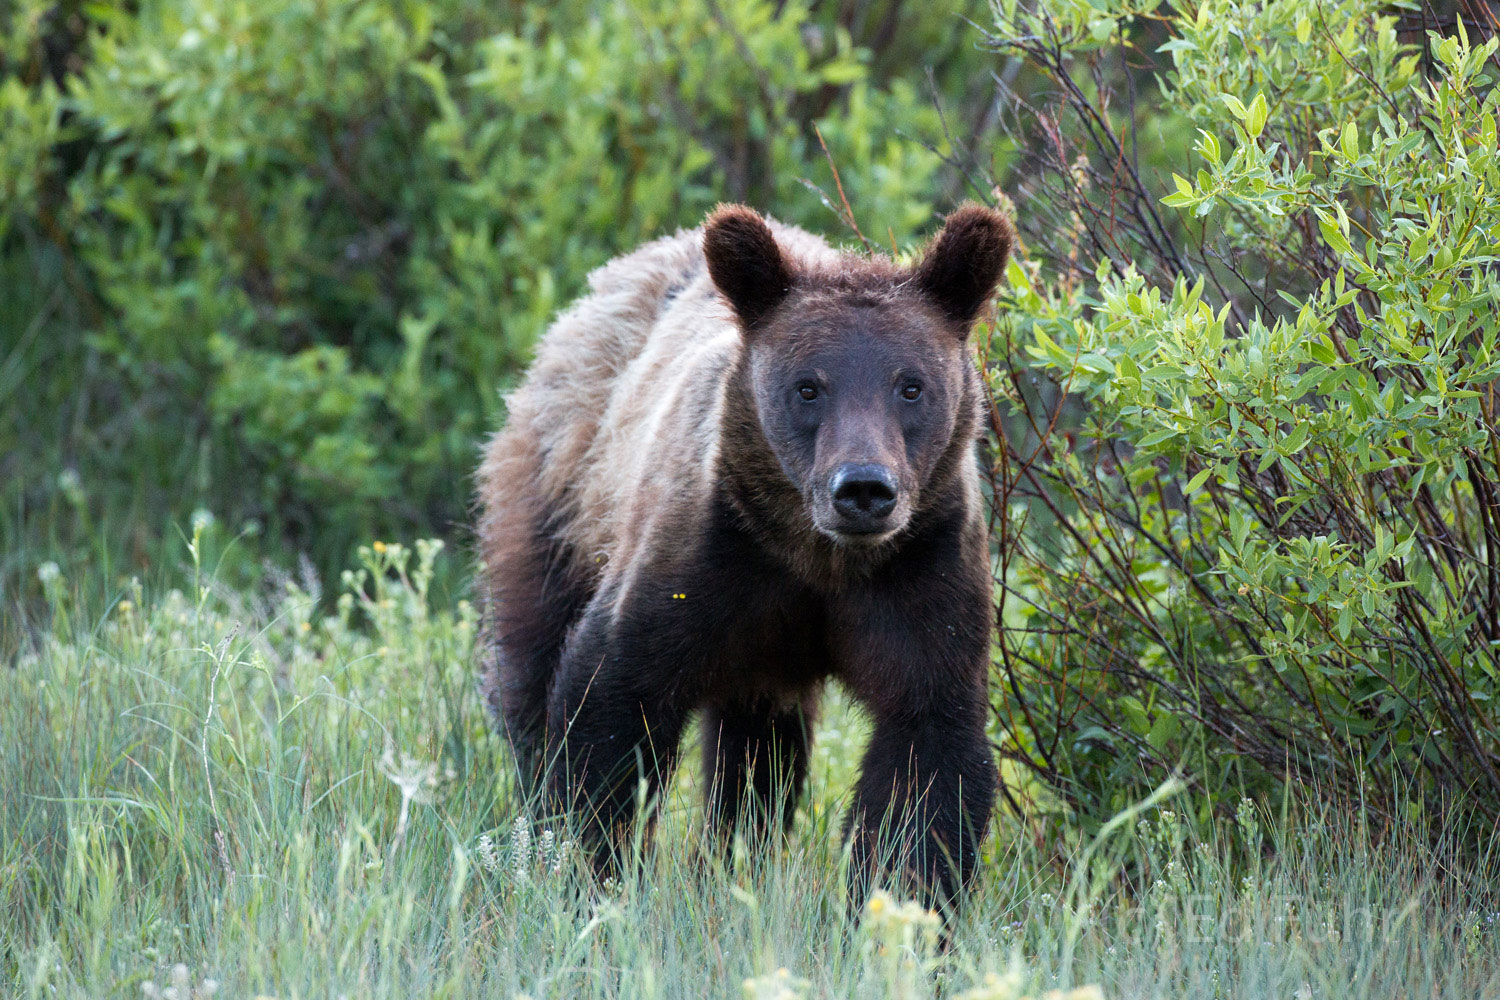 grand teton national park, grizzly bear, 610, cub, photograph, image, 2013, Tetons, Grand Teton, photo